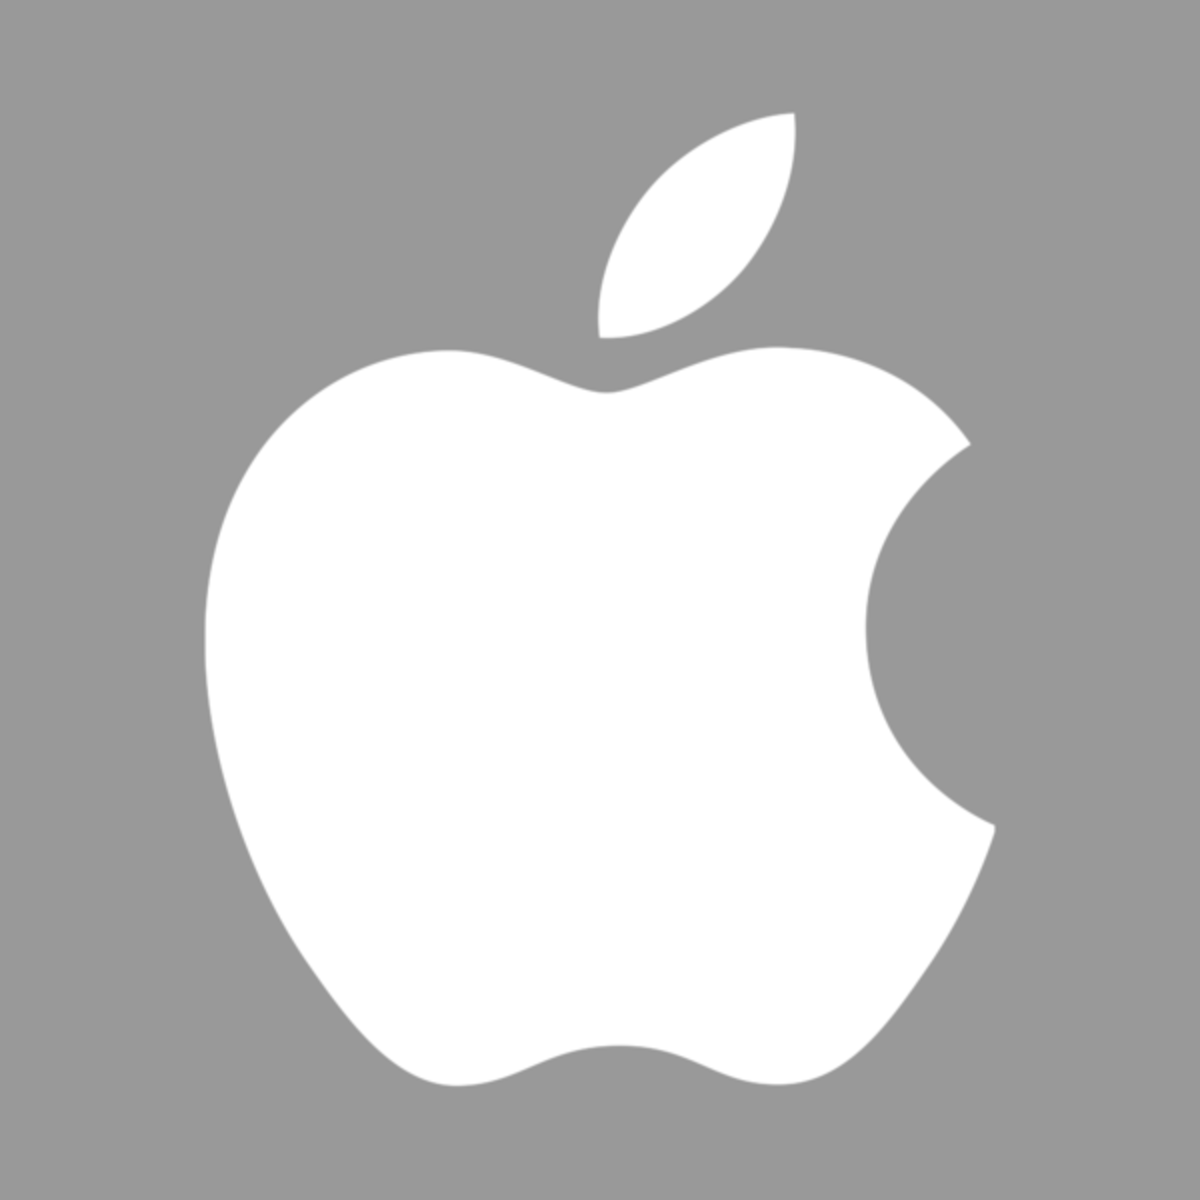 Gray and white Apple logo. The design of the logo started in 1977 designed by Rob Janoff with the rainbow color theme used until 1999 when Apple stopped using the rainbow color theme and used a few different color themes for the same design. Apple